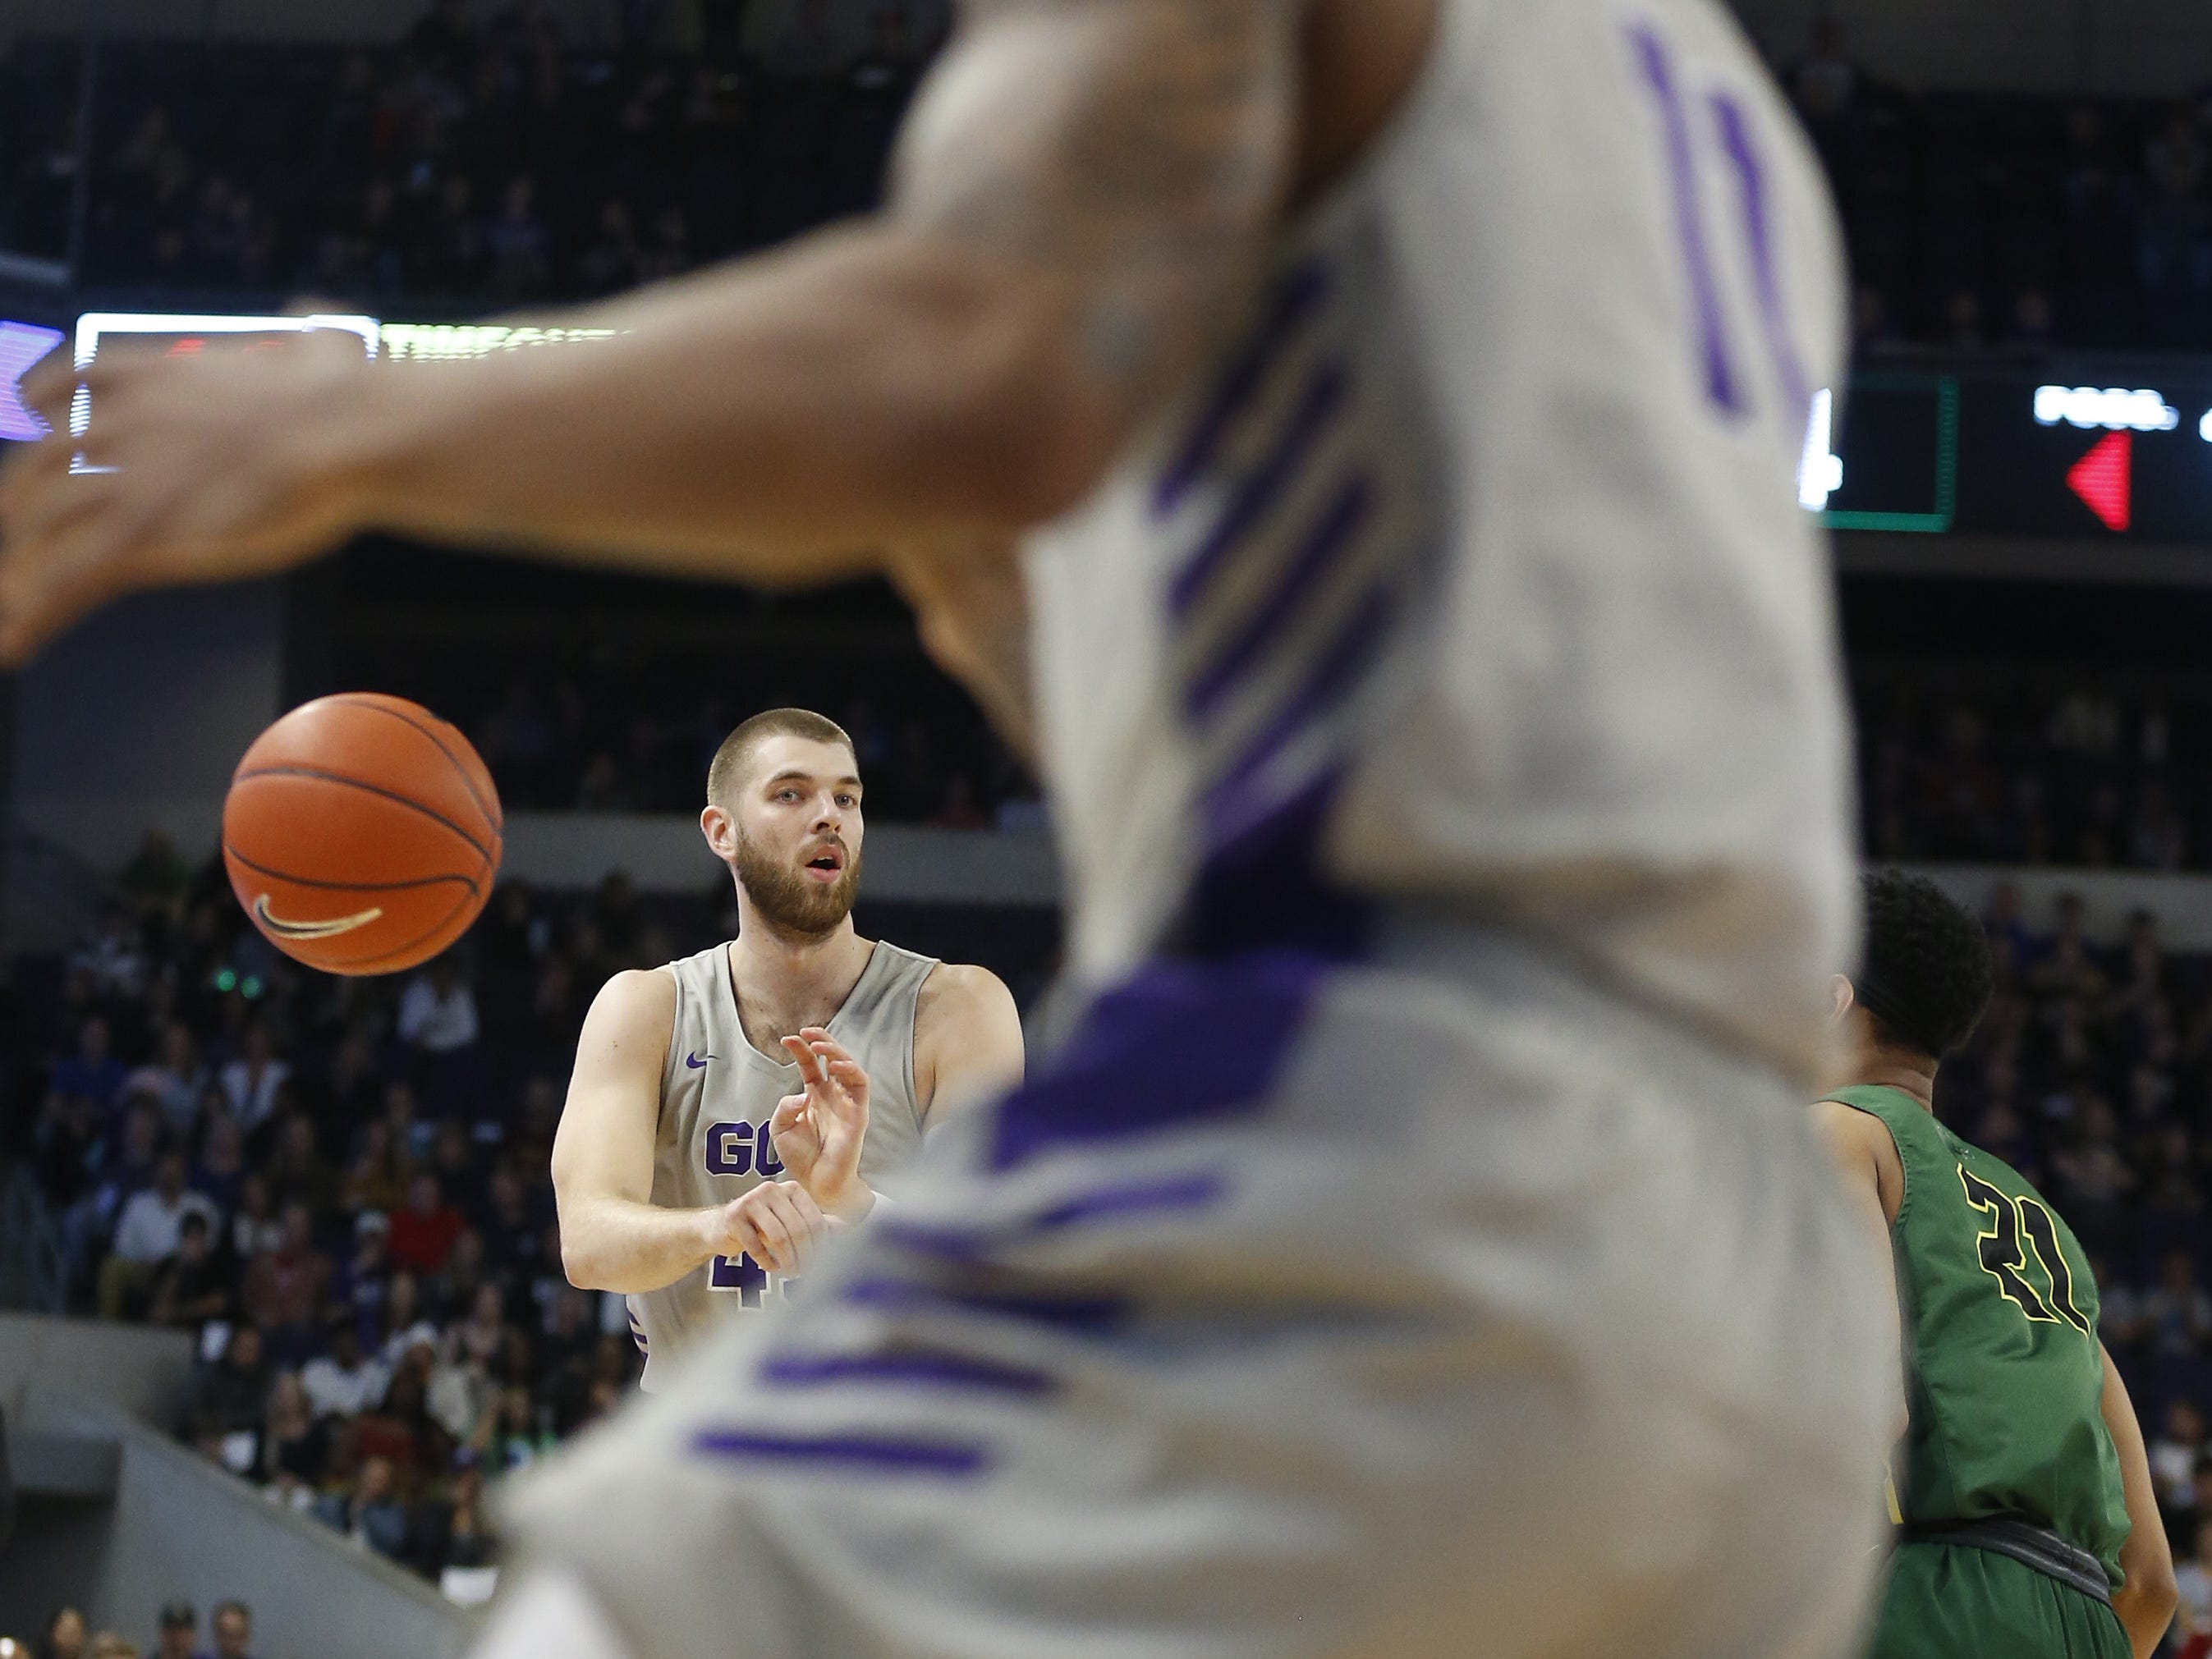 GCU's Michael Finke (43) passes to teammate Damari Milstead (11) against Chicago State University during the first half at Grand Canyon University Arena in Phoenix, Ariz. on January 17, 2019.